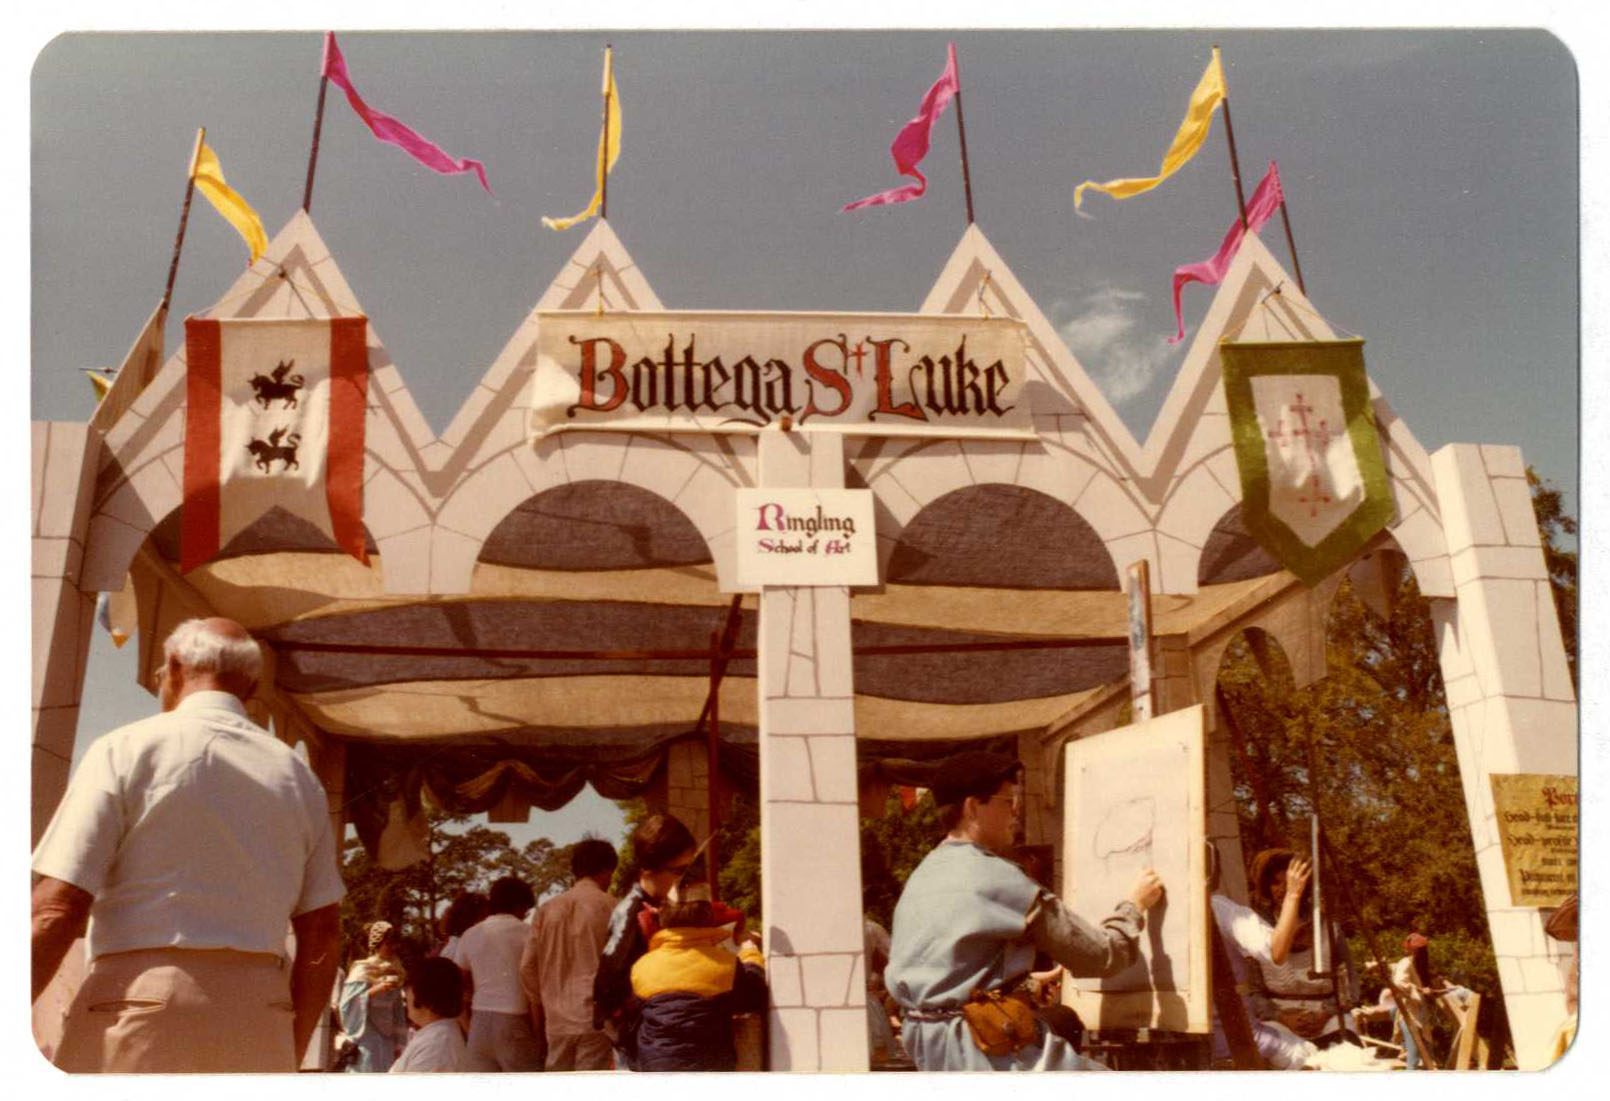 Ringling School of Art installation at Medieval Faire 1979 called